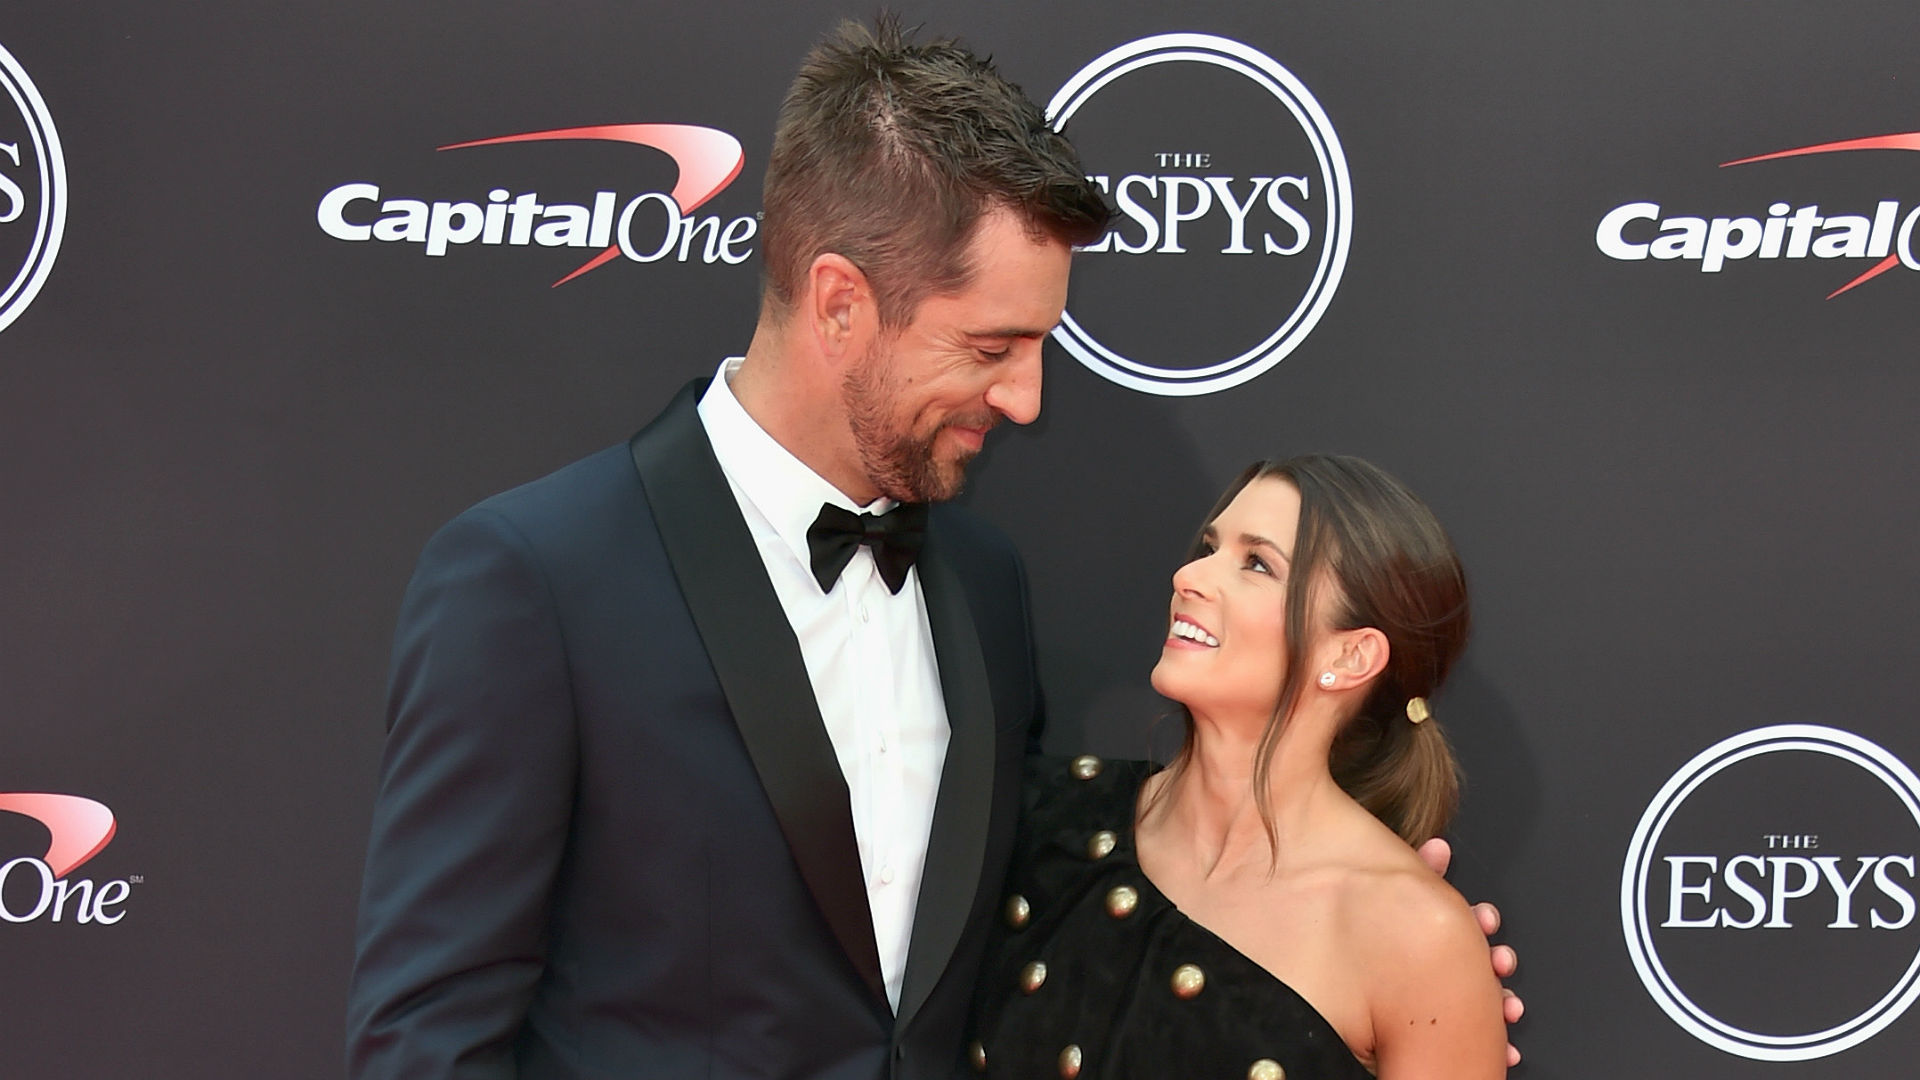 Aaron Rodgers and Danica Patrick: A look at their relationship timeline